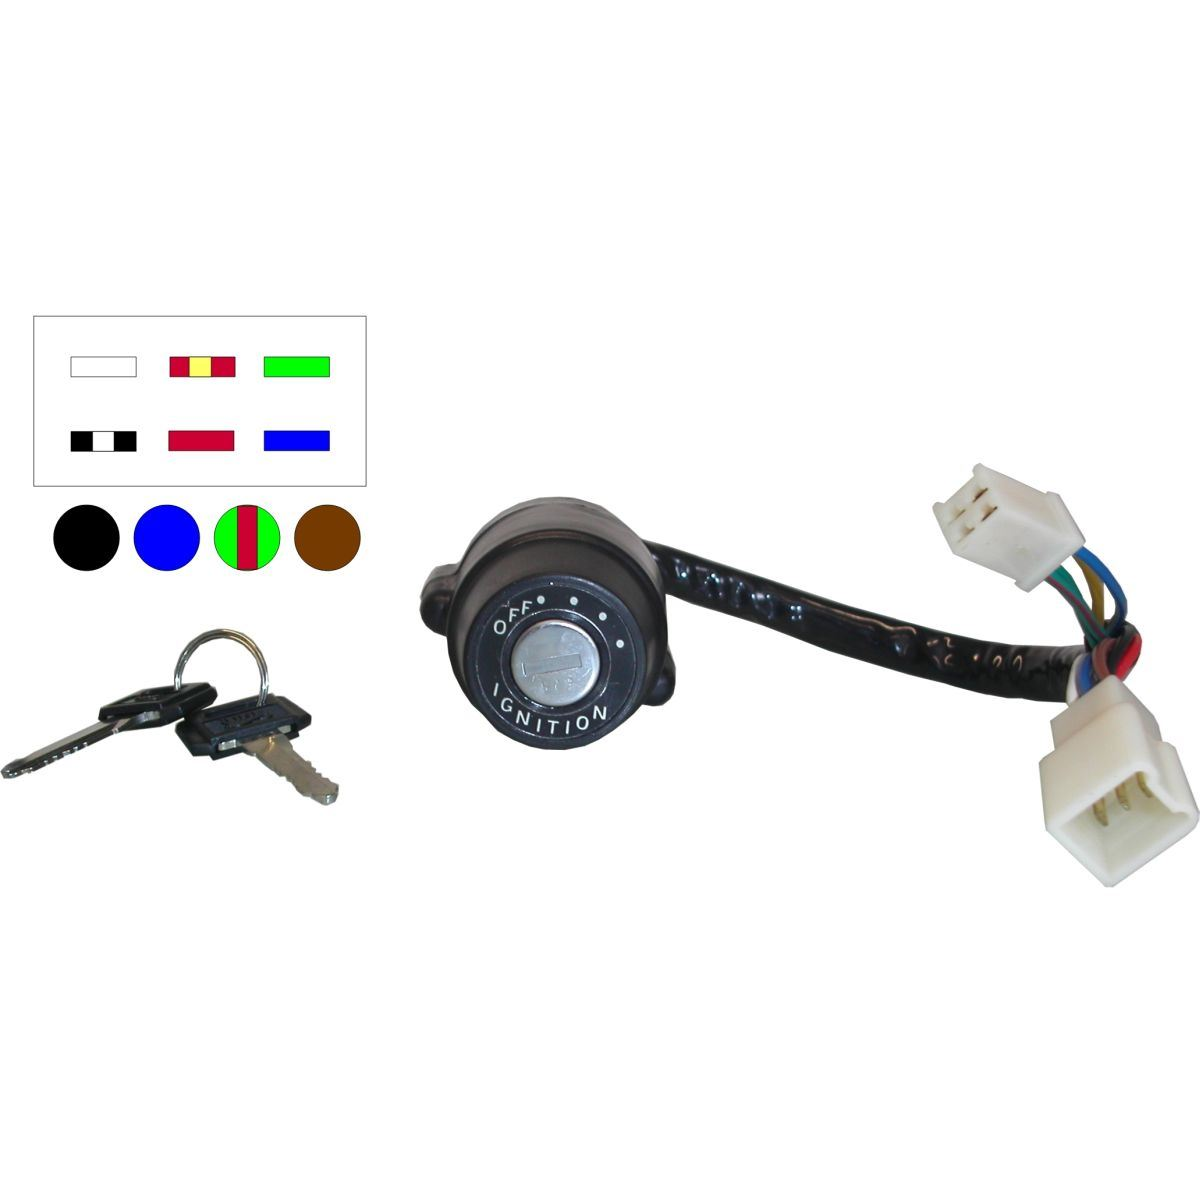 aw motorcycle parts ignition switch yamaha rs100 rs125 10 wires picture of ignition switch yamaha rs100 rs125 10 wires